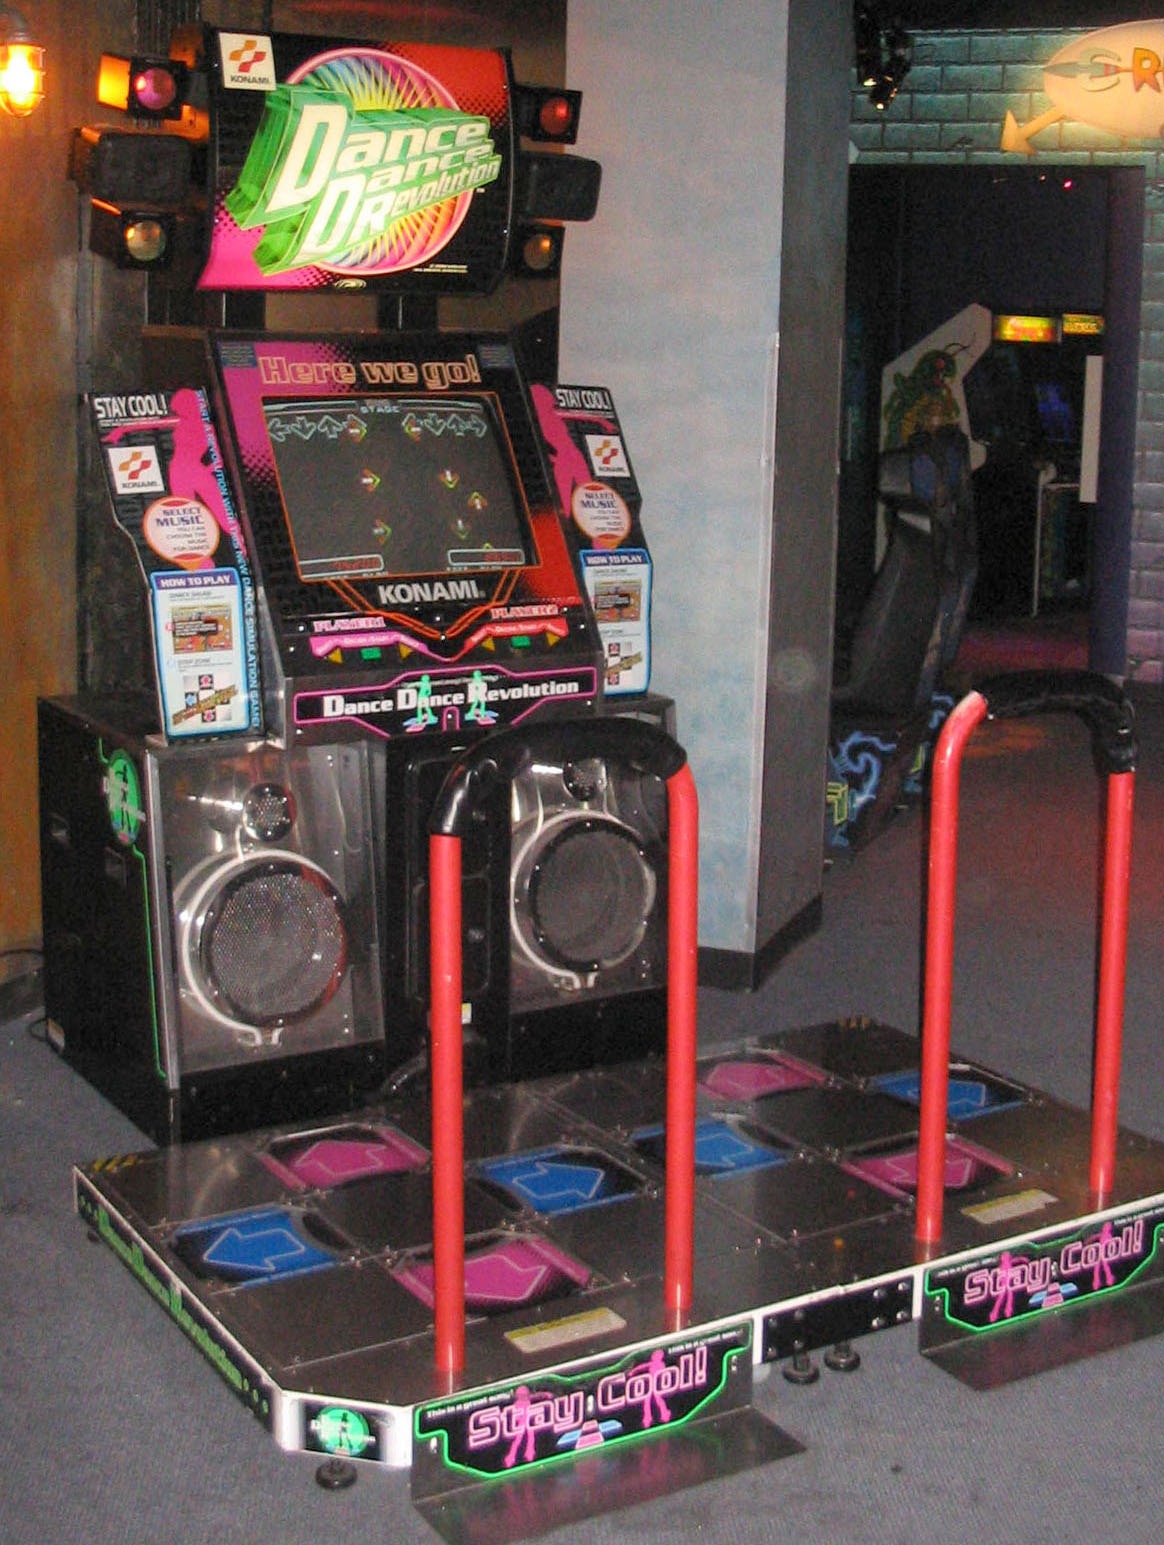 Product Description can achieve consistency in your game when you're playing at the arcade.